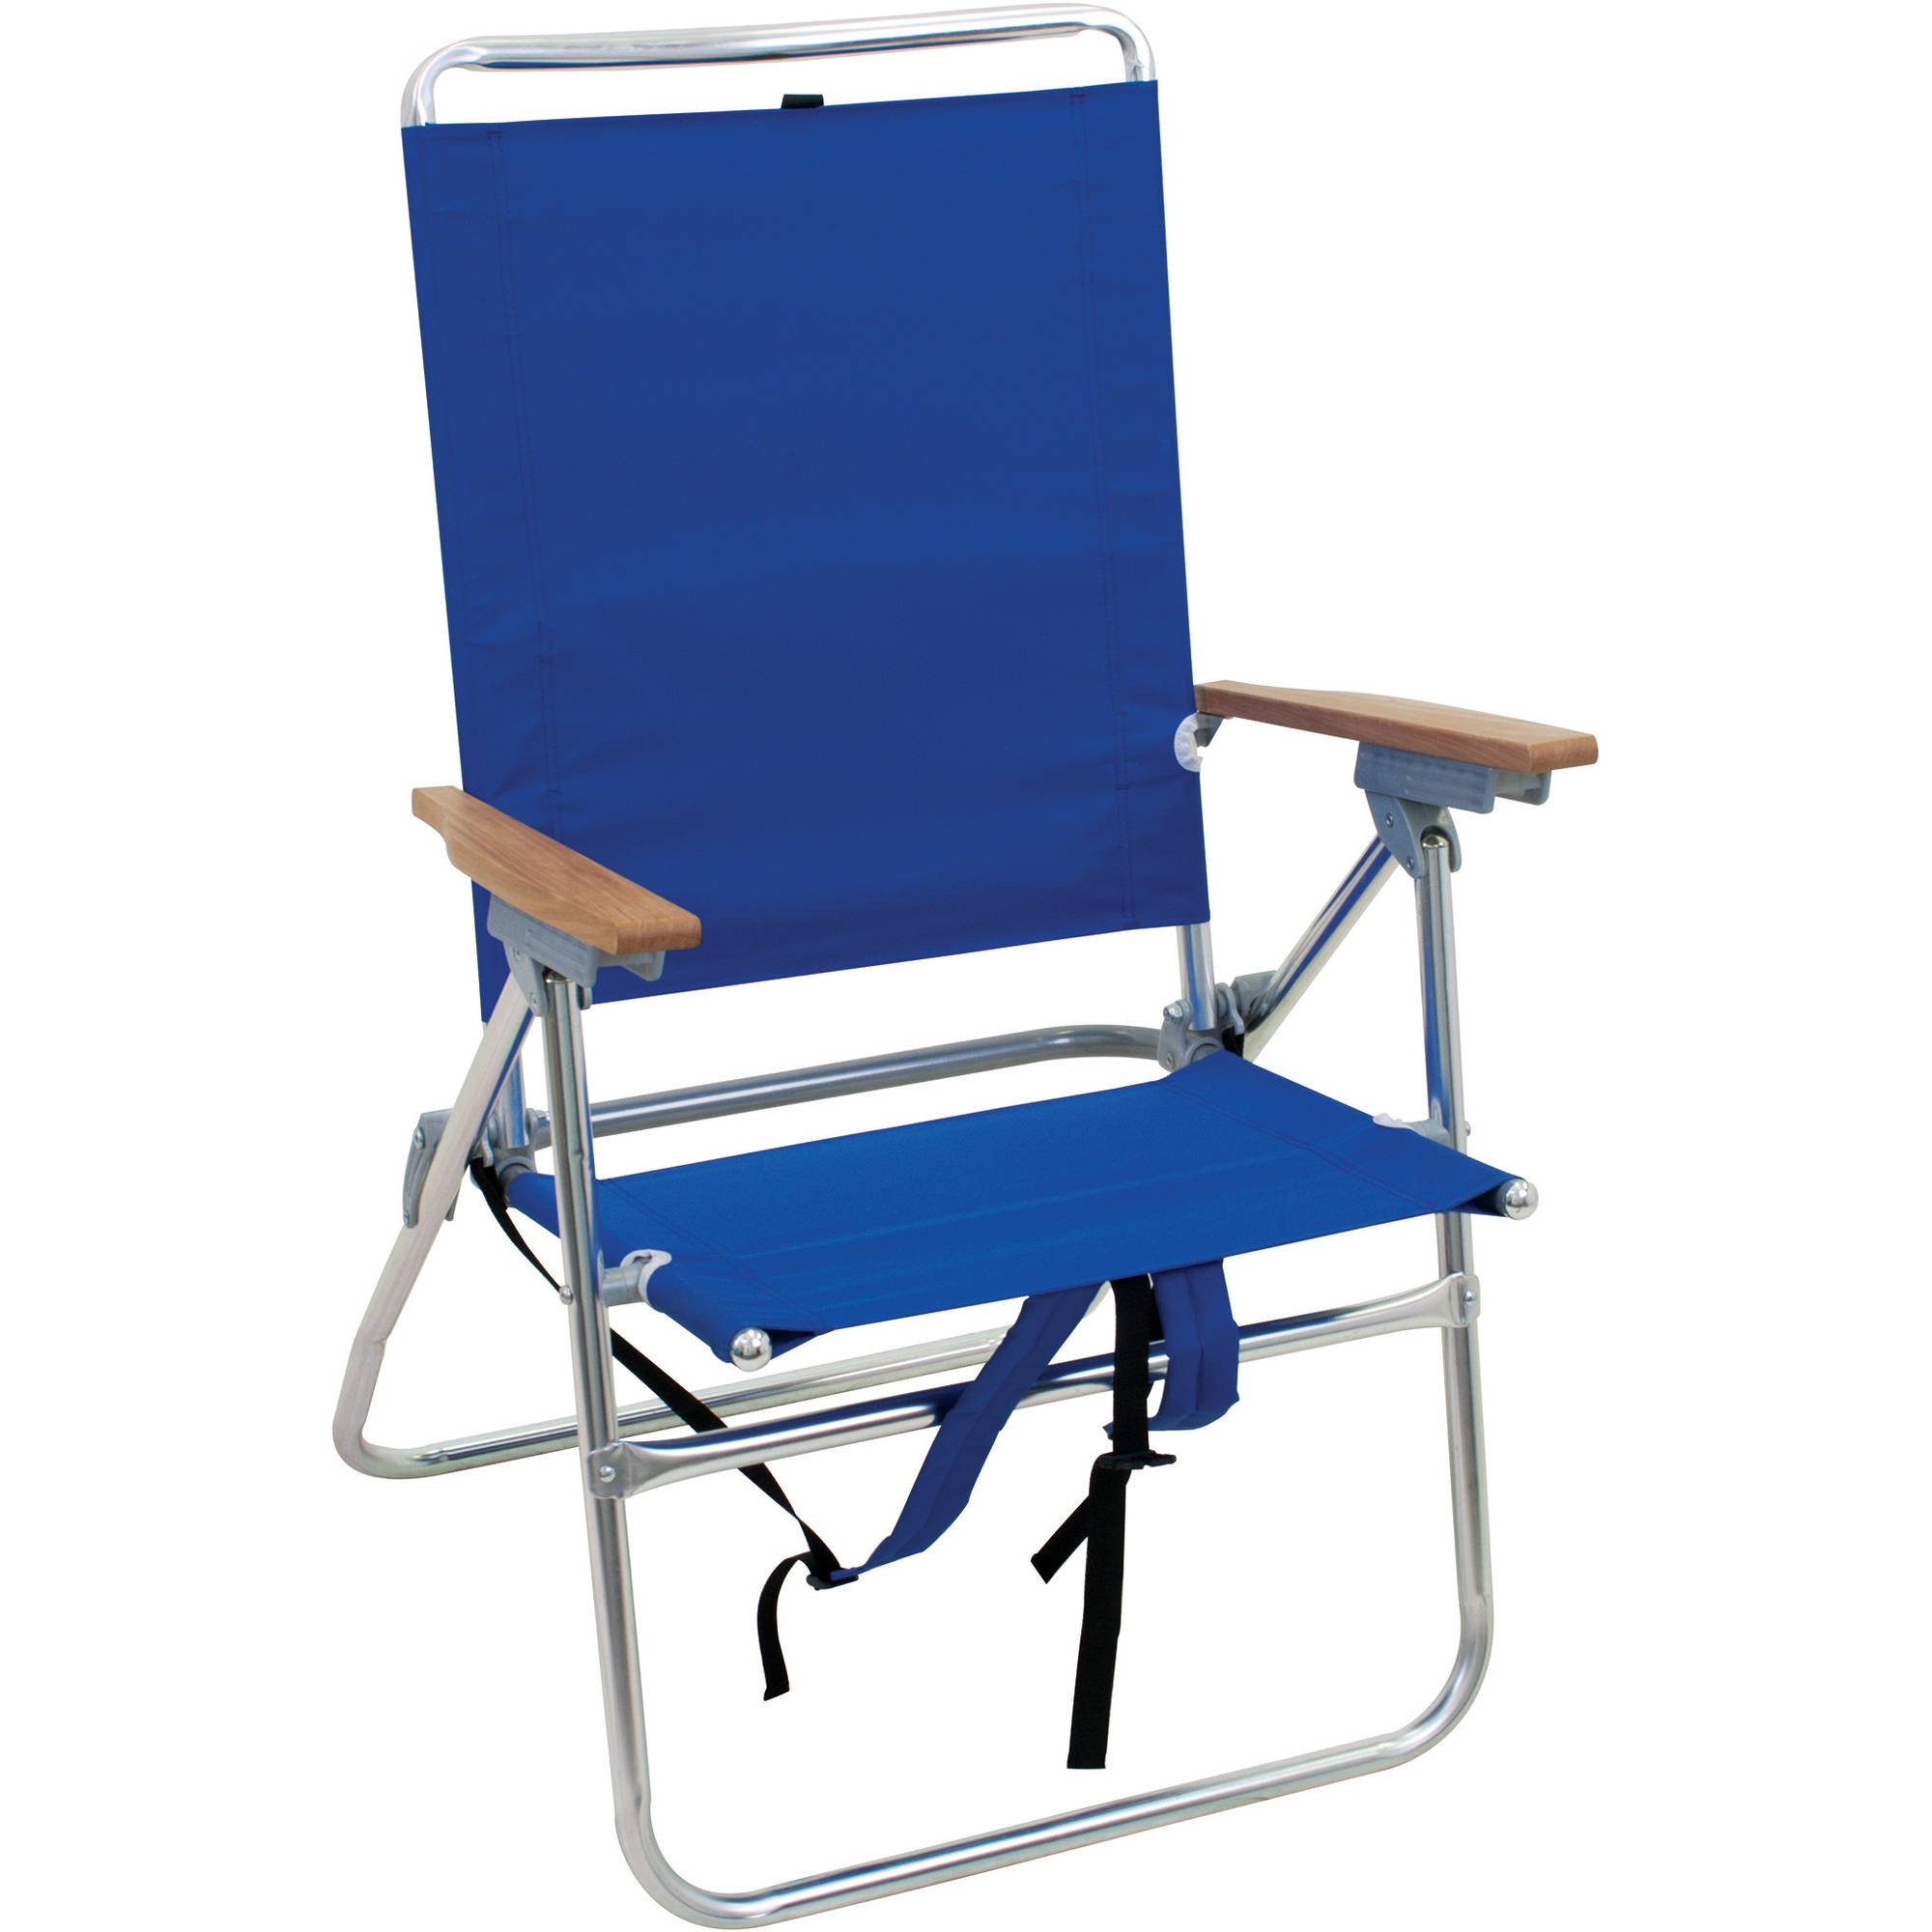 beach chair photo frame covers for sofa and loveseat rio hi boy with backpack straps aluminum 17 inch seat height walmart com